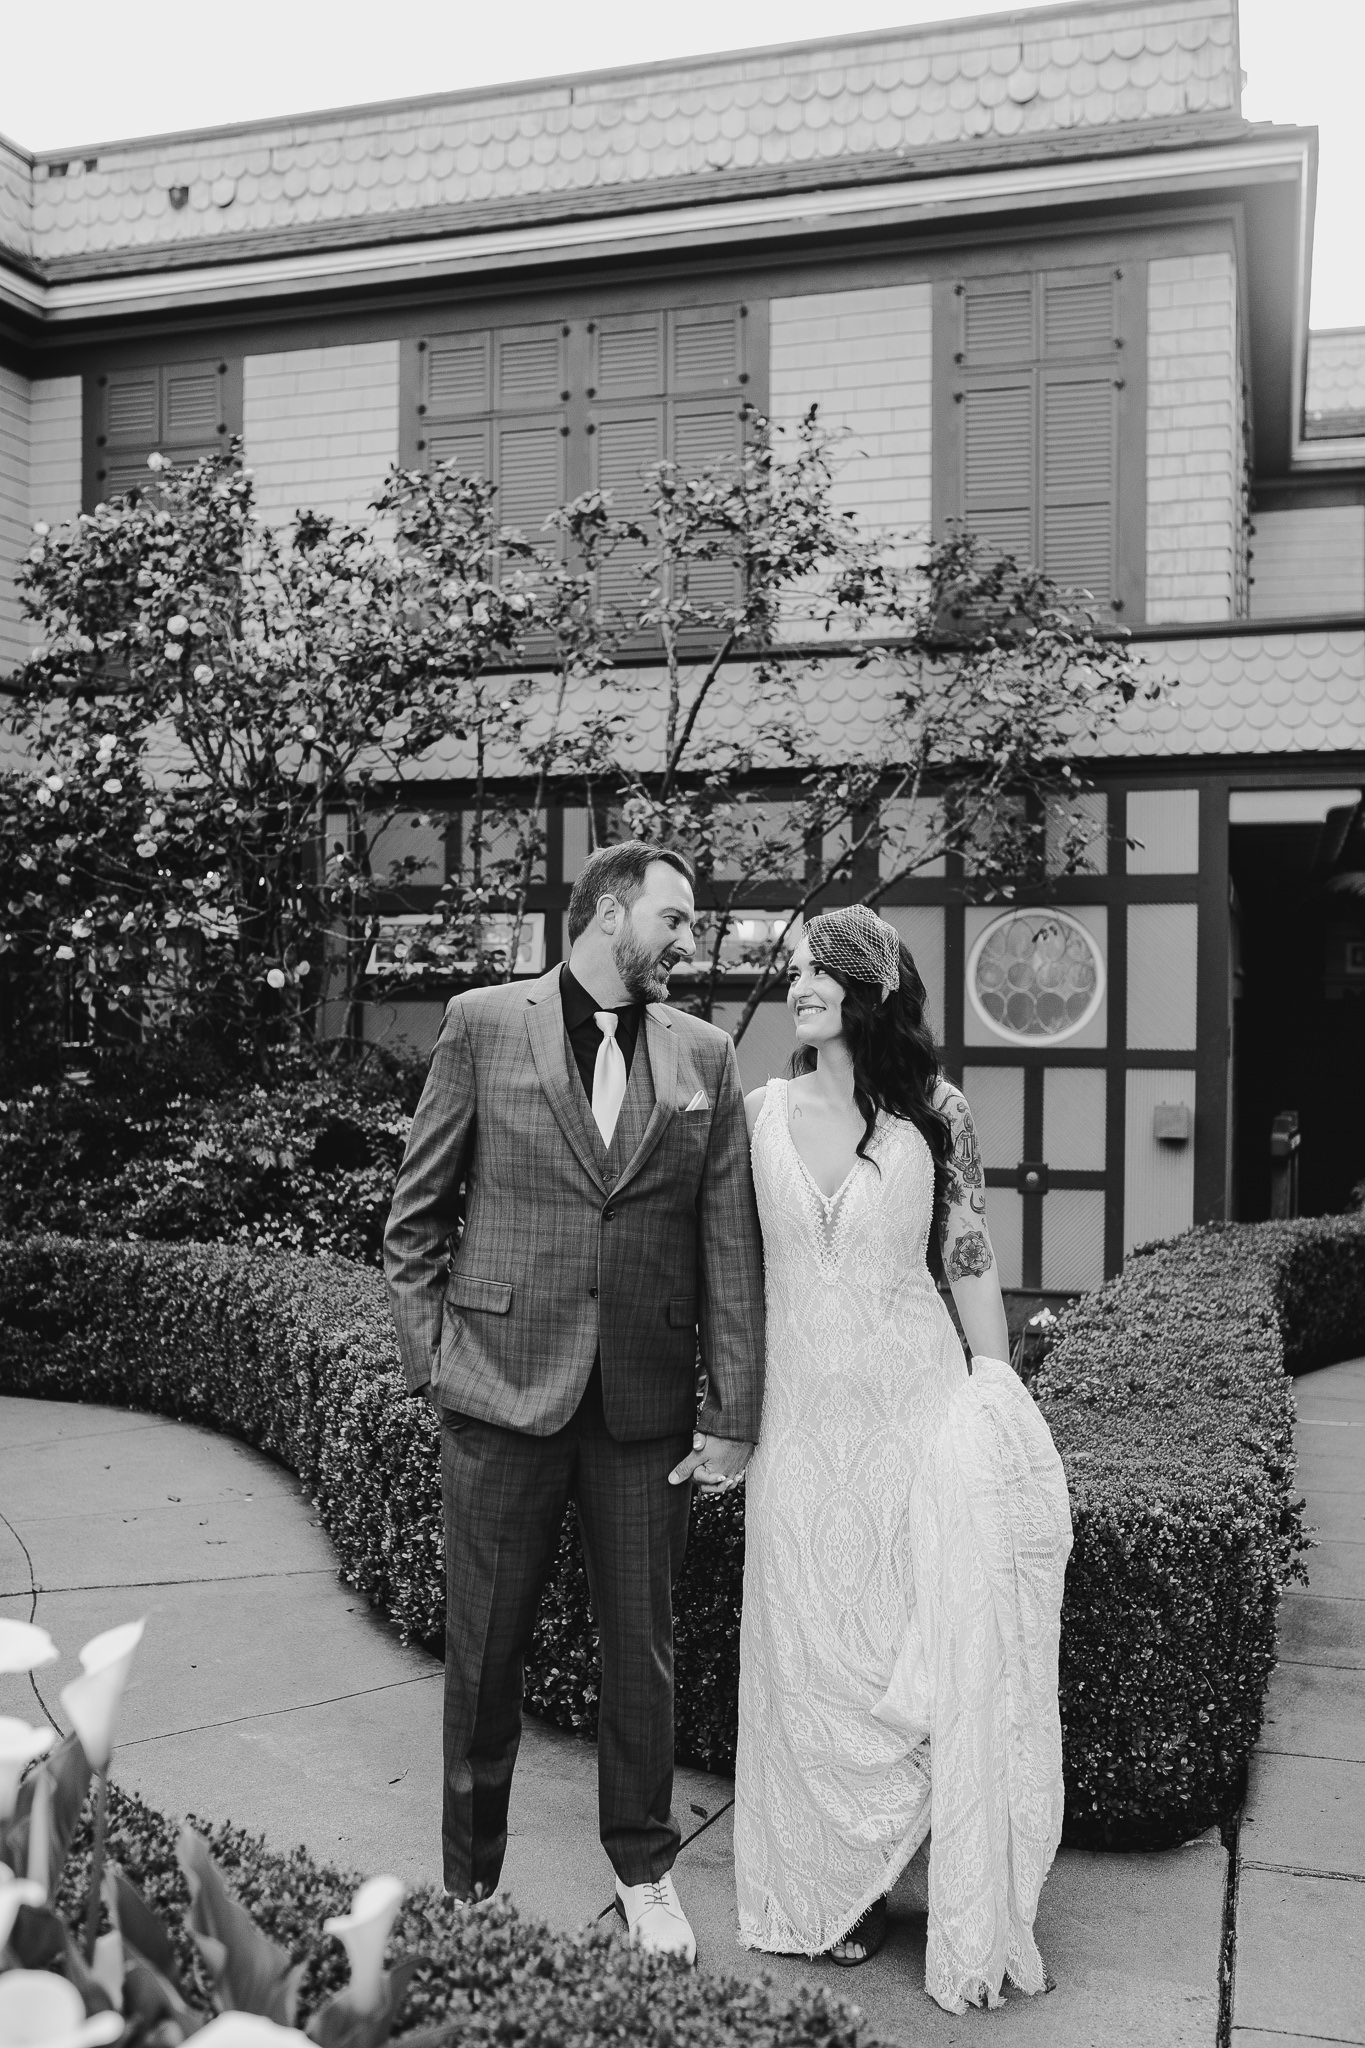 Archer Inspired Photography Sara and Aaron Winchester Mystery House NorCal San Jose California Wedding Photographer-397.jpg